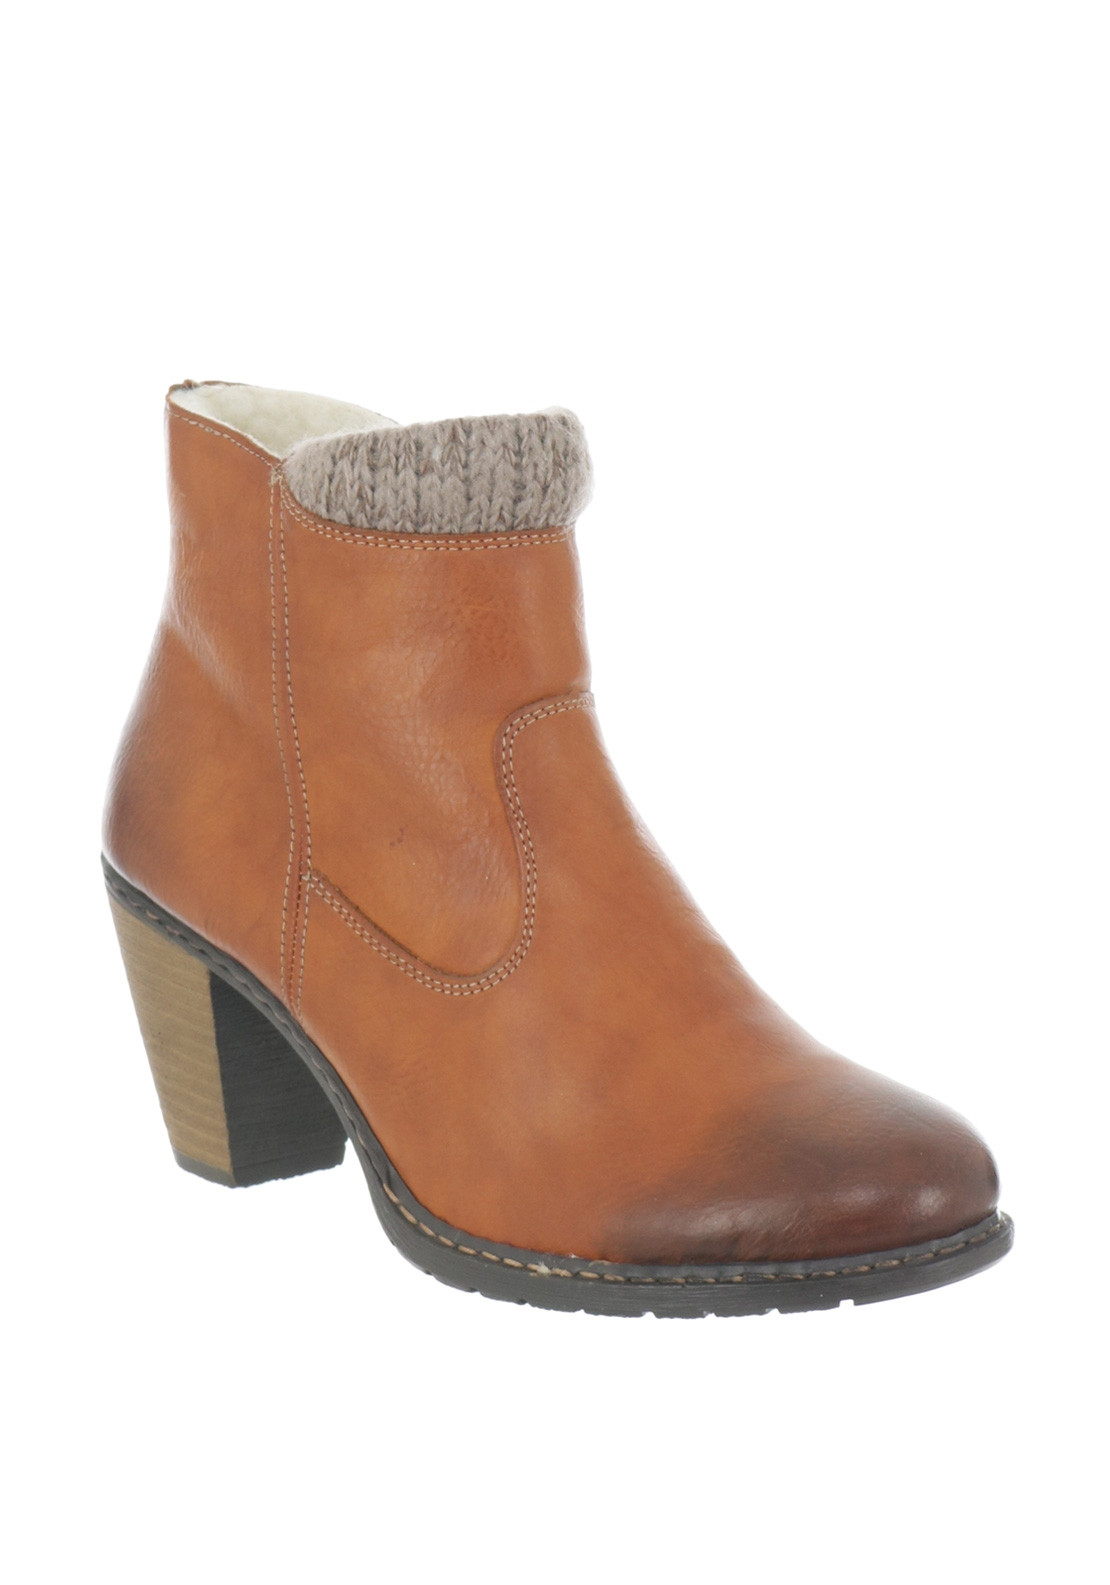 Rieker Womens Knit Cuff Heeled Ankle Boots, Tan